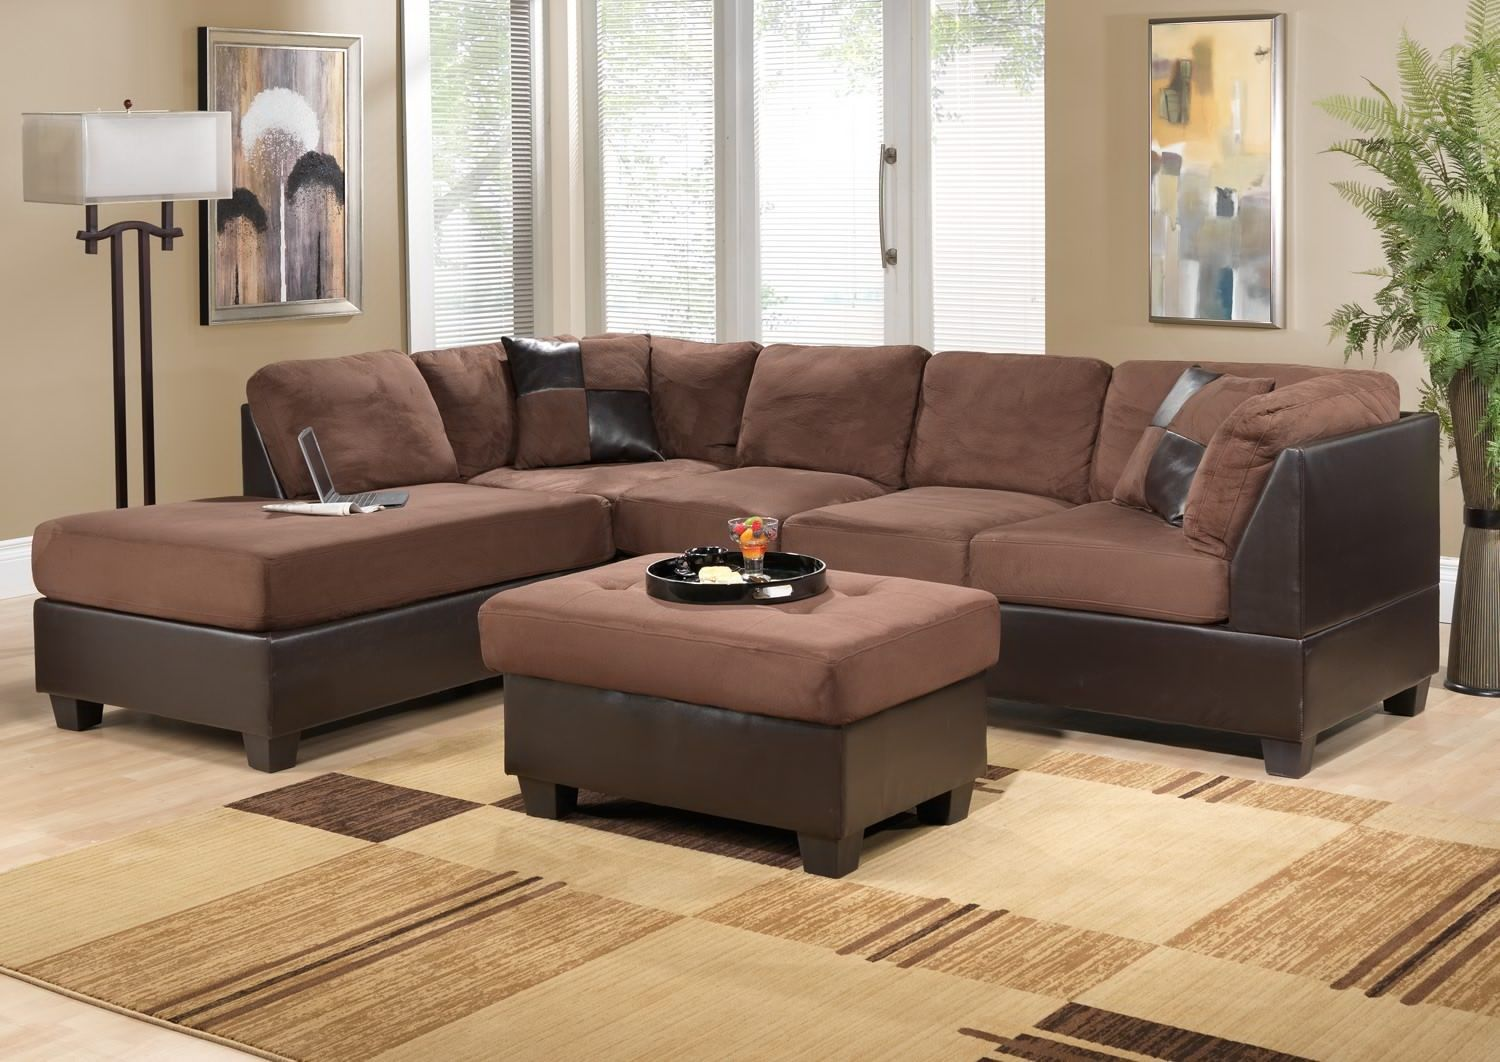 Sofa Set Deals | Cheap living room sets, Contemporary ...